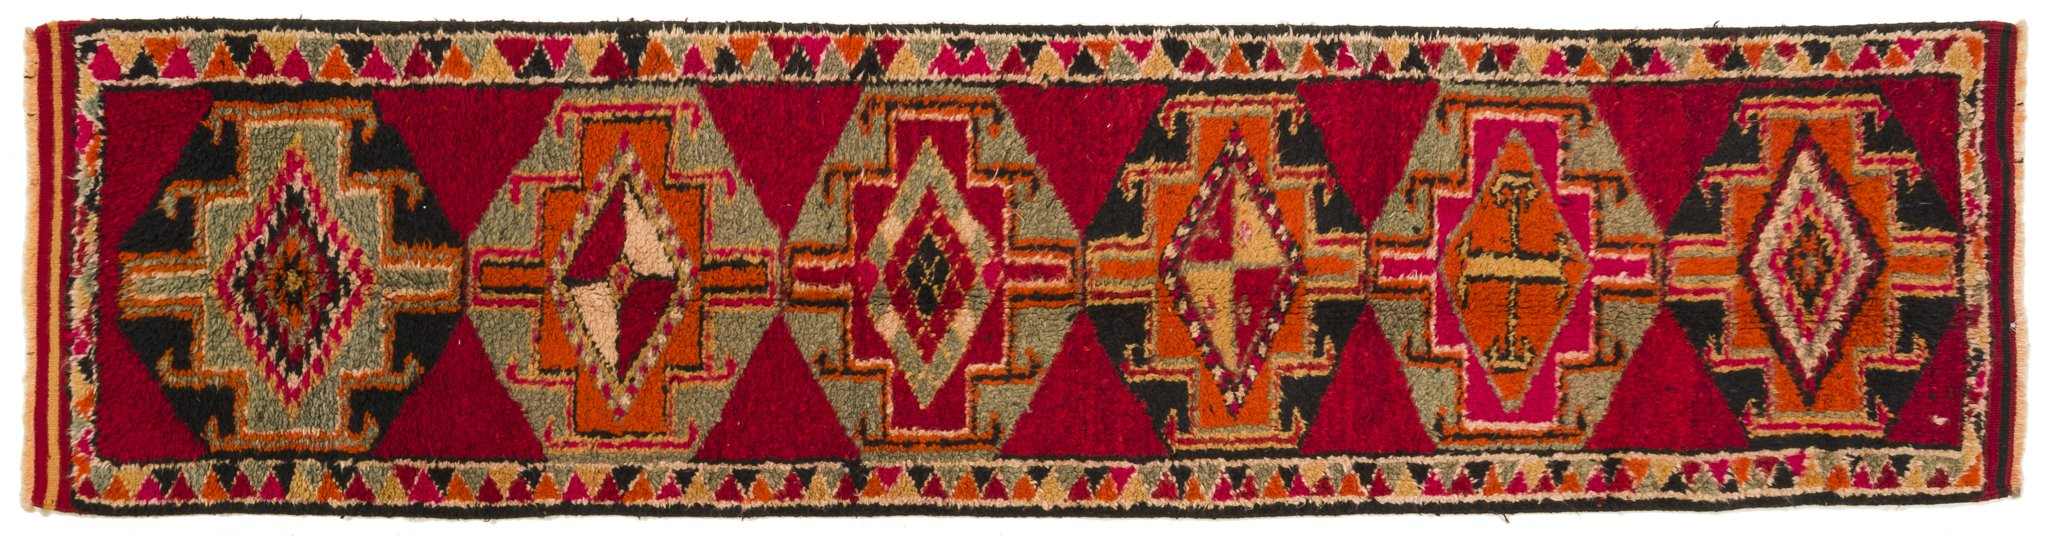 Vintage Turkish Runner Rug Lado